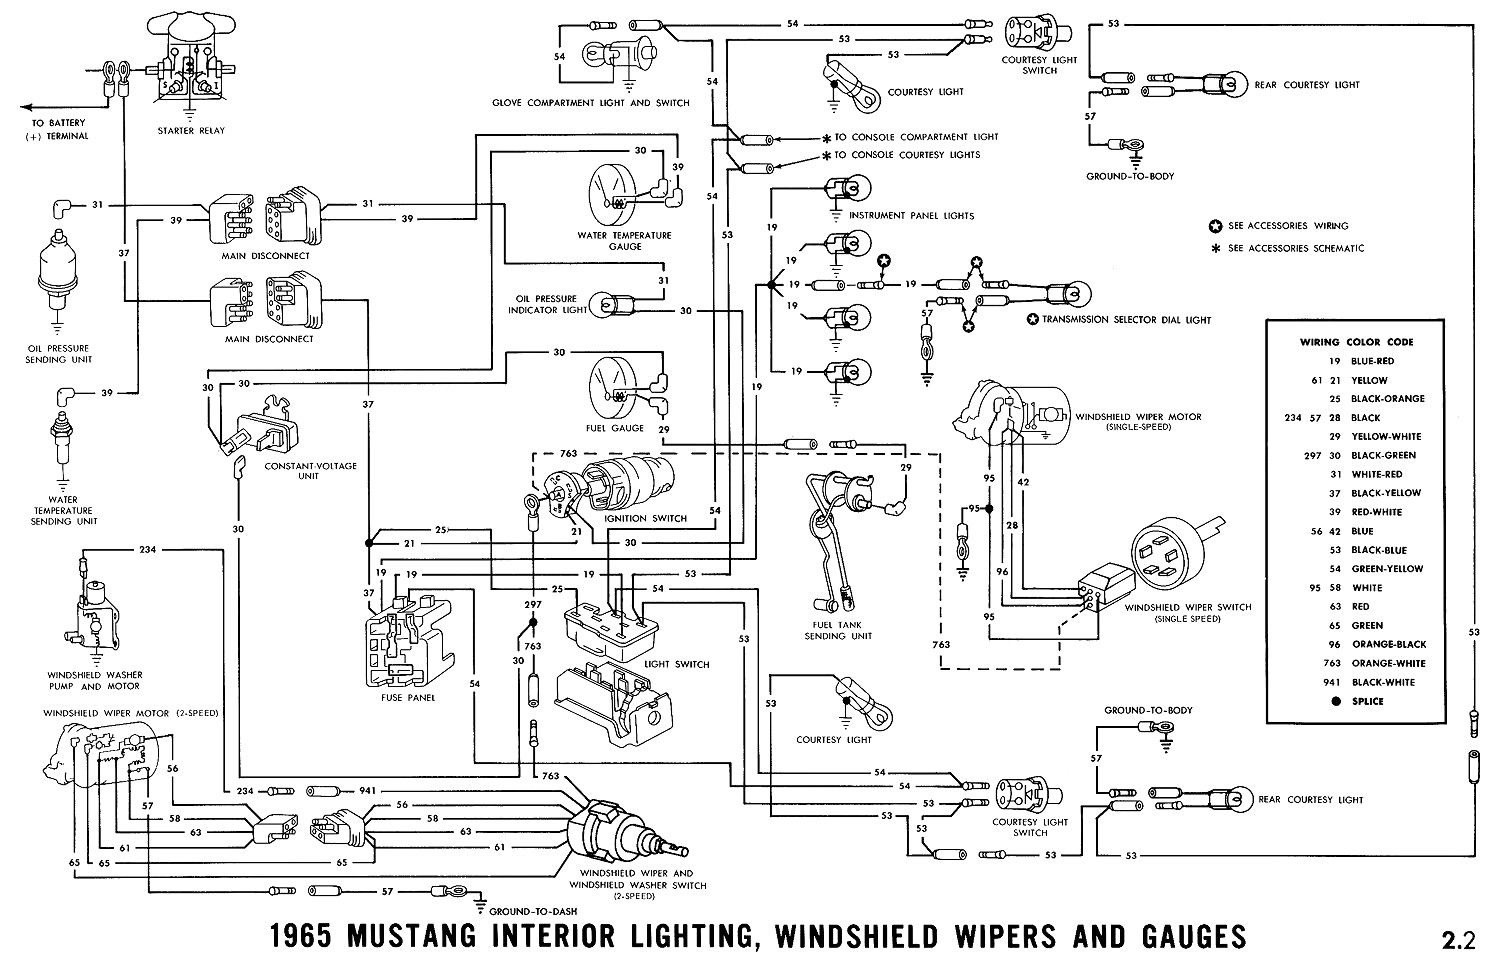 1965 mustang ignition switch wiring diagram - 1965 mustang ignition wiring  diagram 1967 mustang wiring diagram